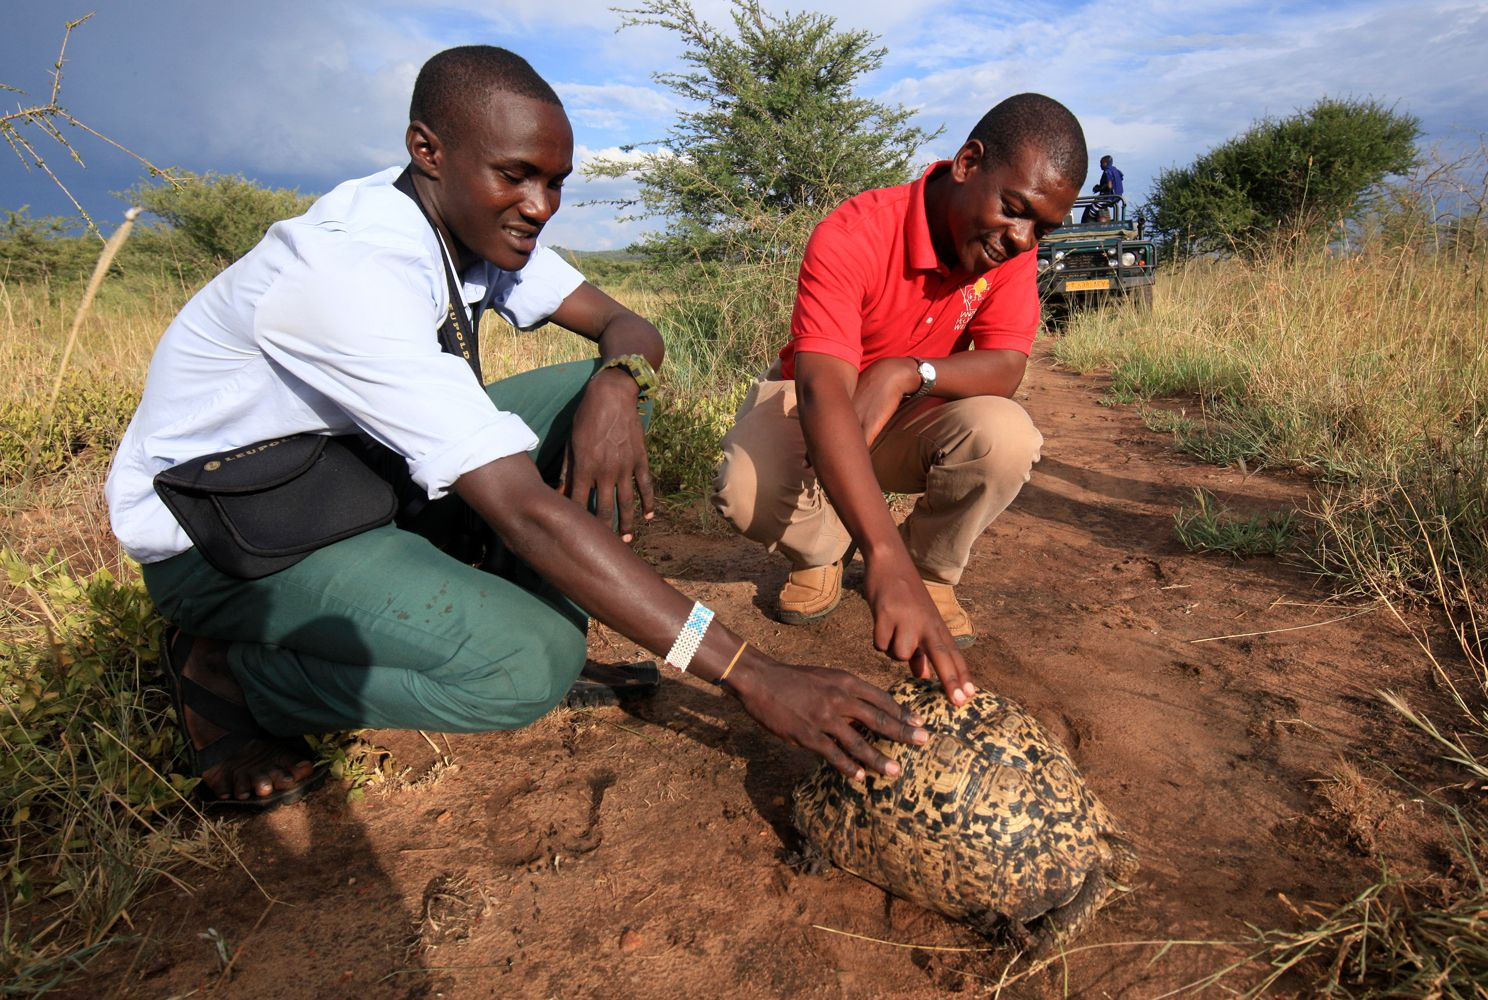 Studying a tortoise during an APW environmental education program